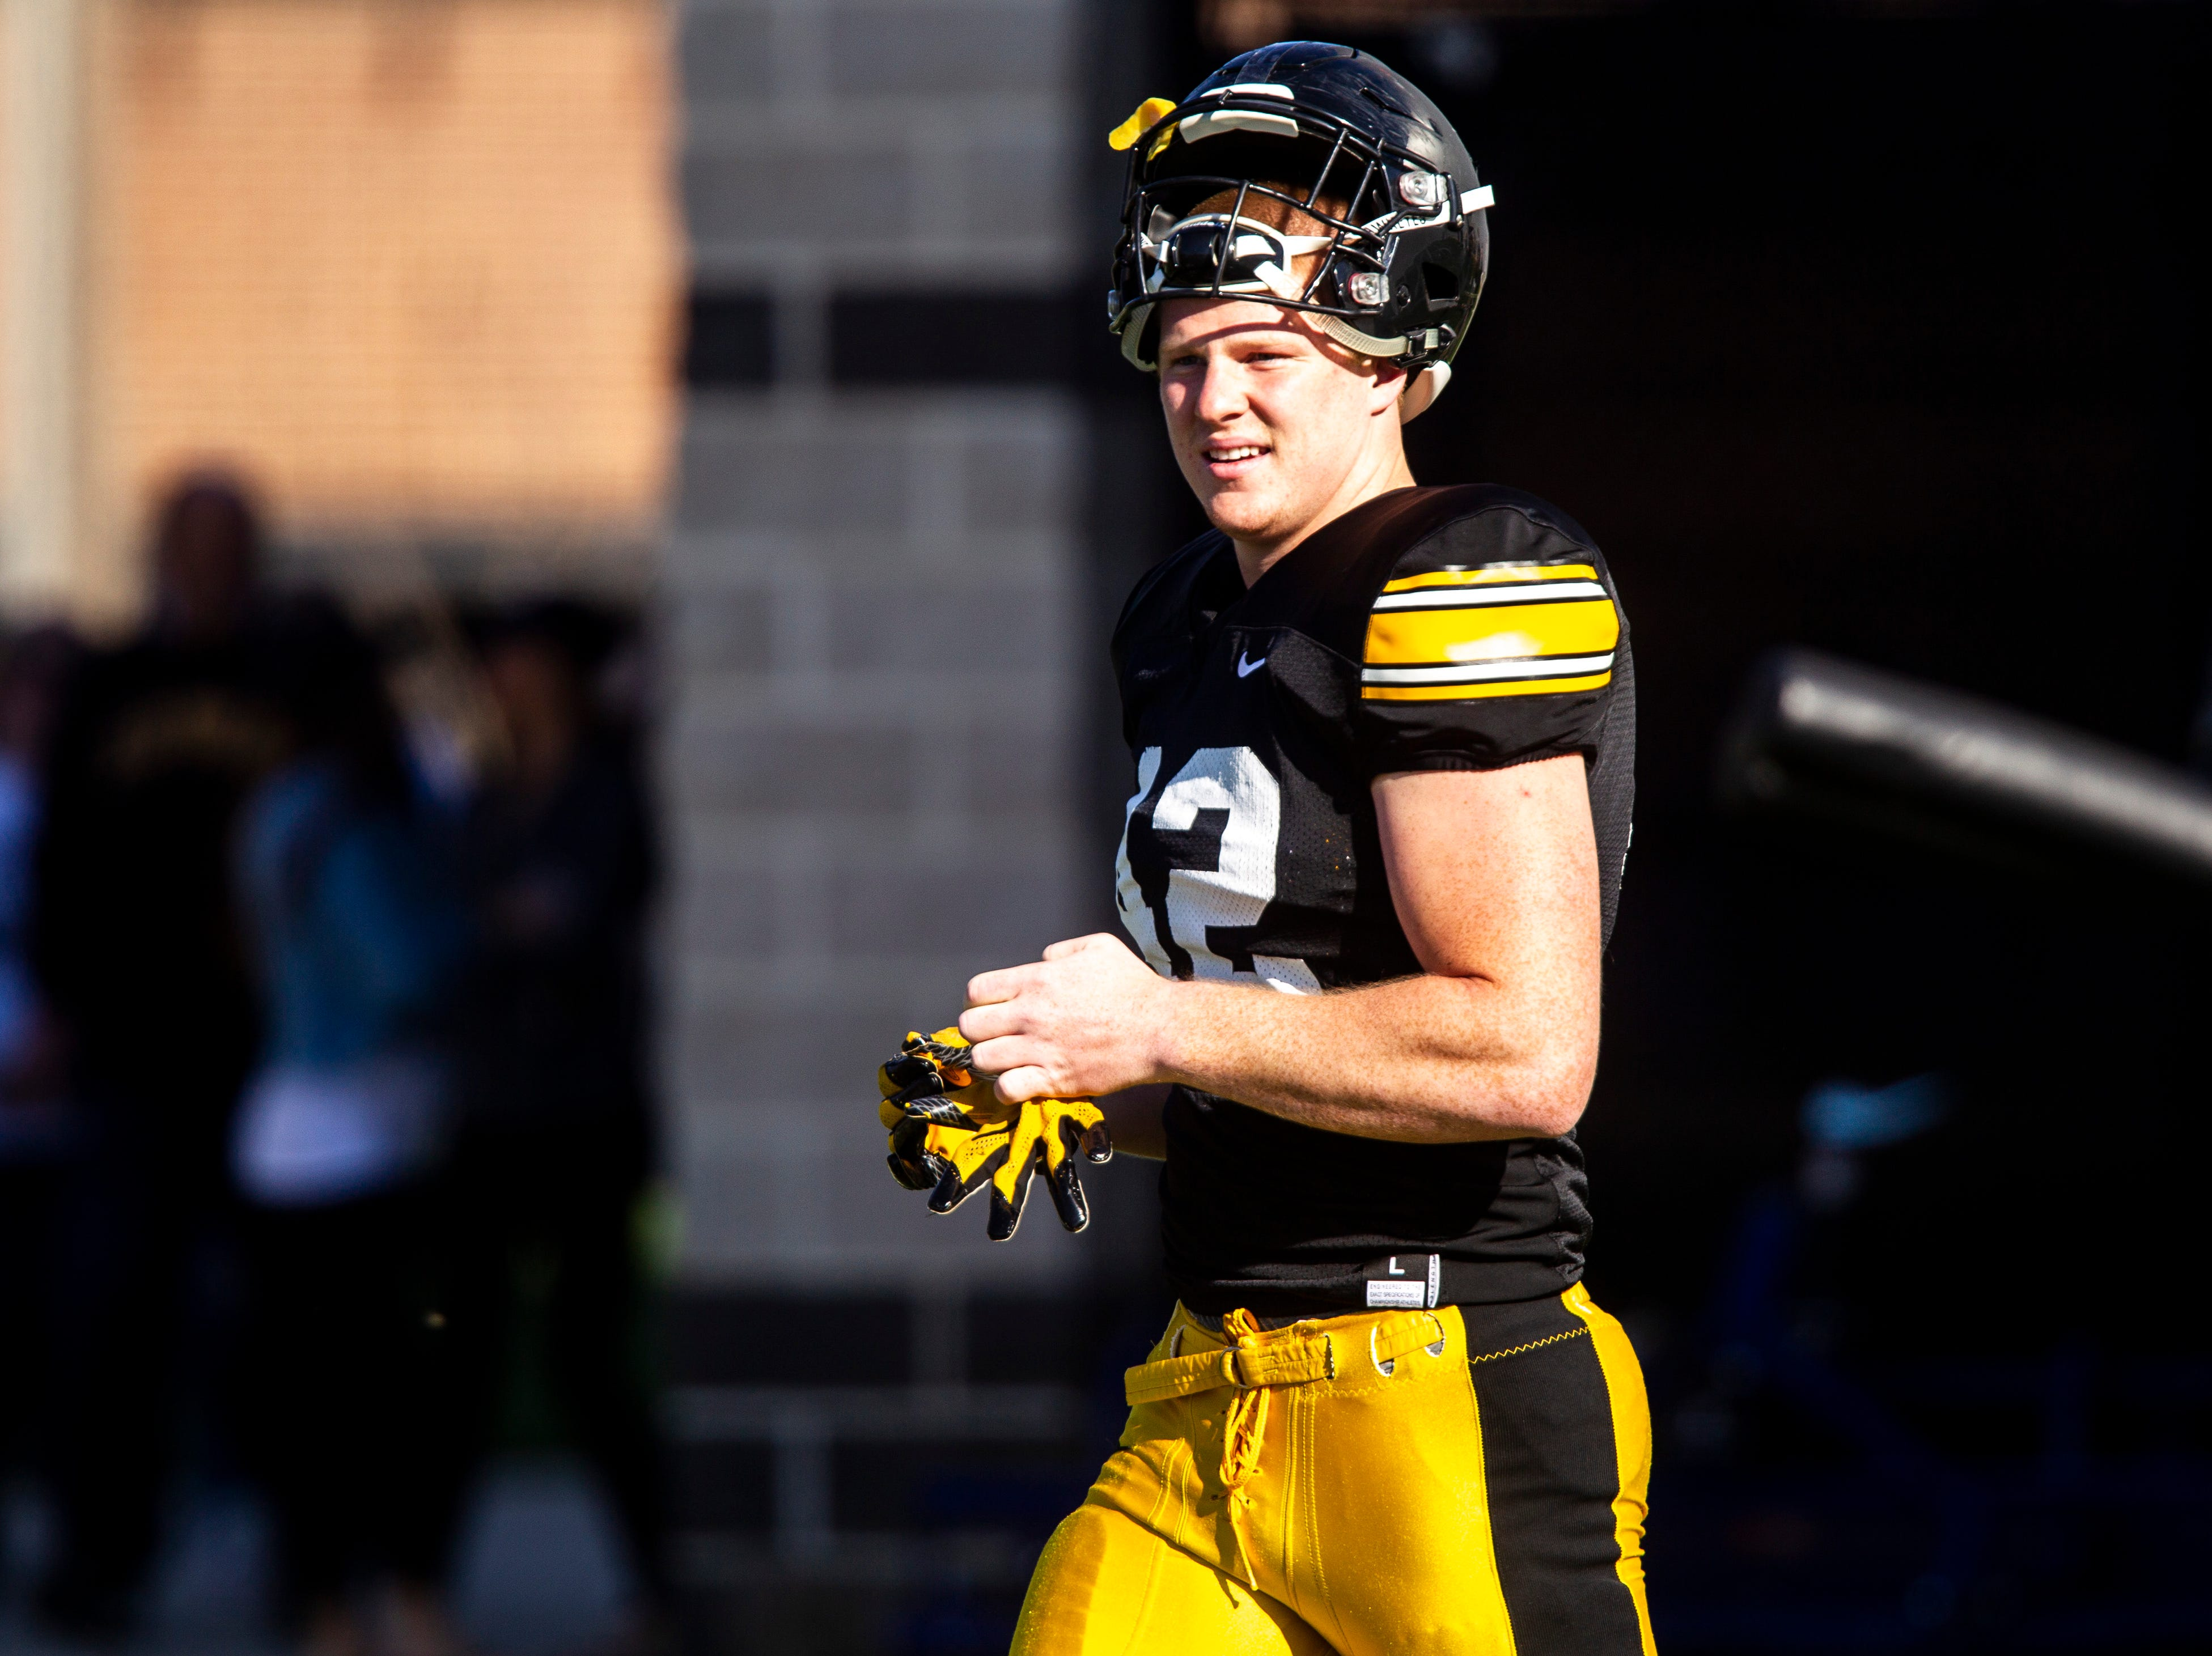 Iowa tight end Shaun Beyer (42) is pictured during the final spring football practice, Friday, April 26, 2019, at the University of Iowa outdoor practice facility in Iowa City, Iowa.